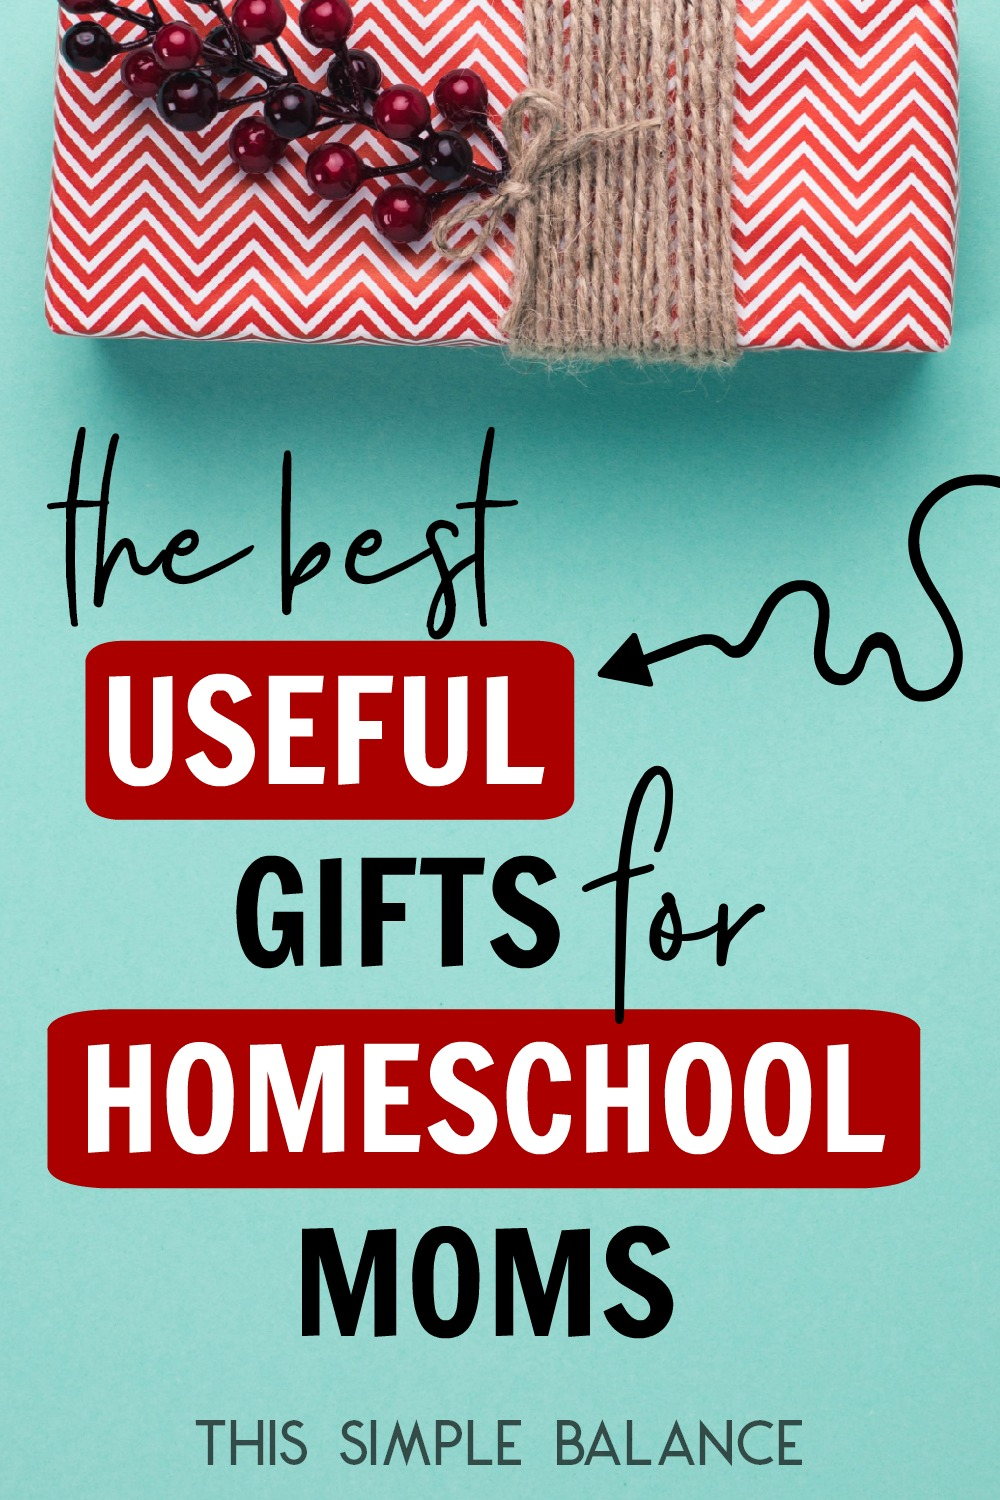 The best useful Christmas gift ideas for the homeschool moms.